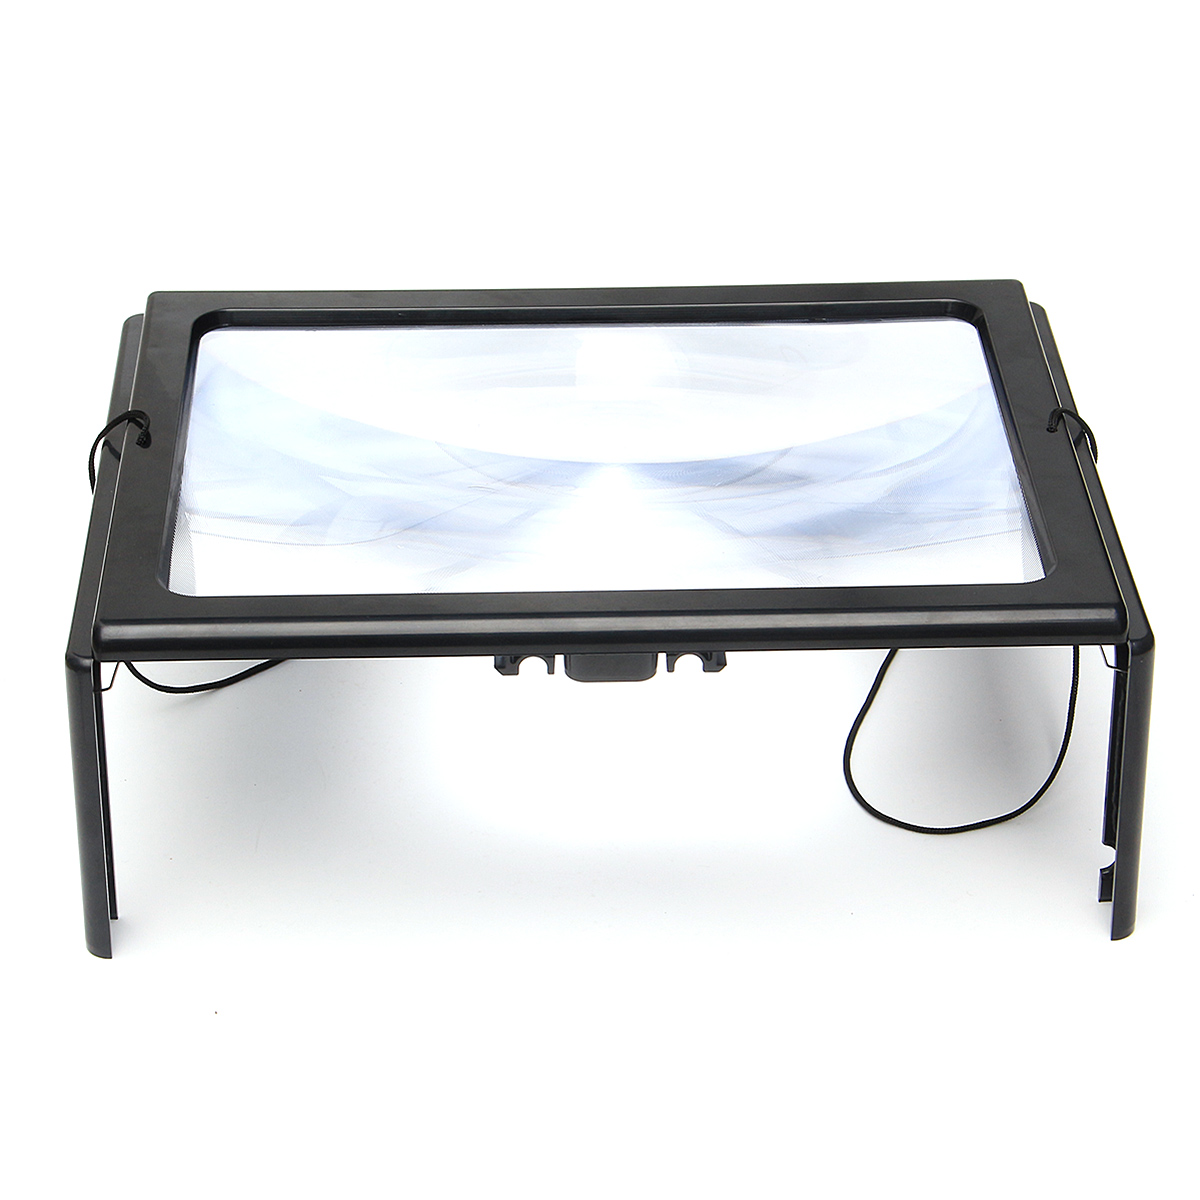 Hands Free Magnifier Magnifying Glass Reading Repairing Aid with 4 LED Light